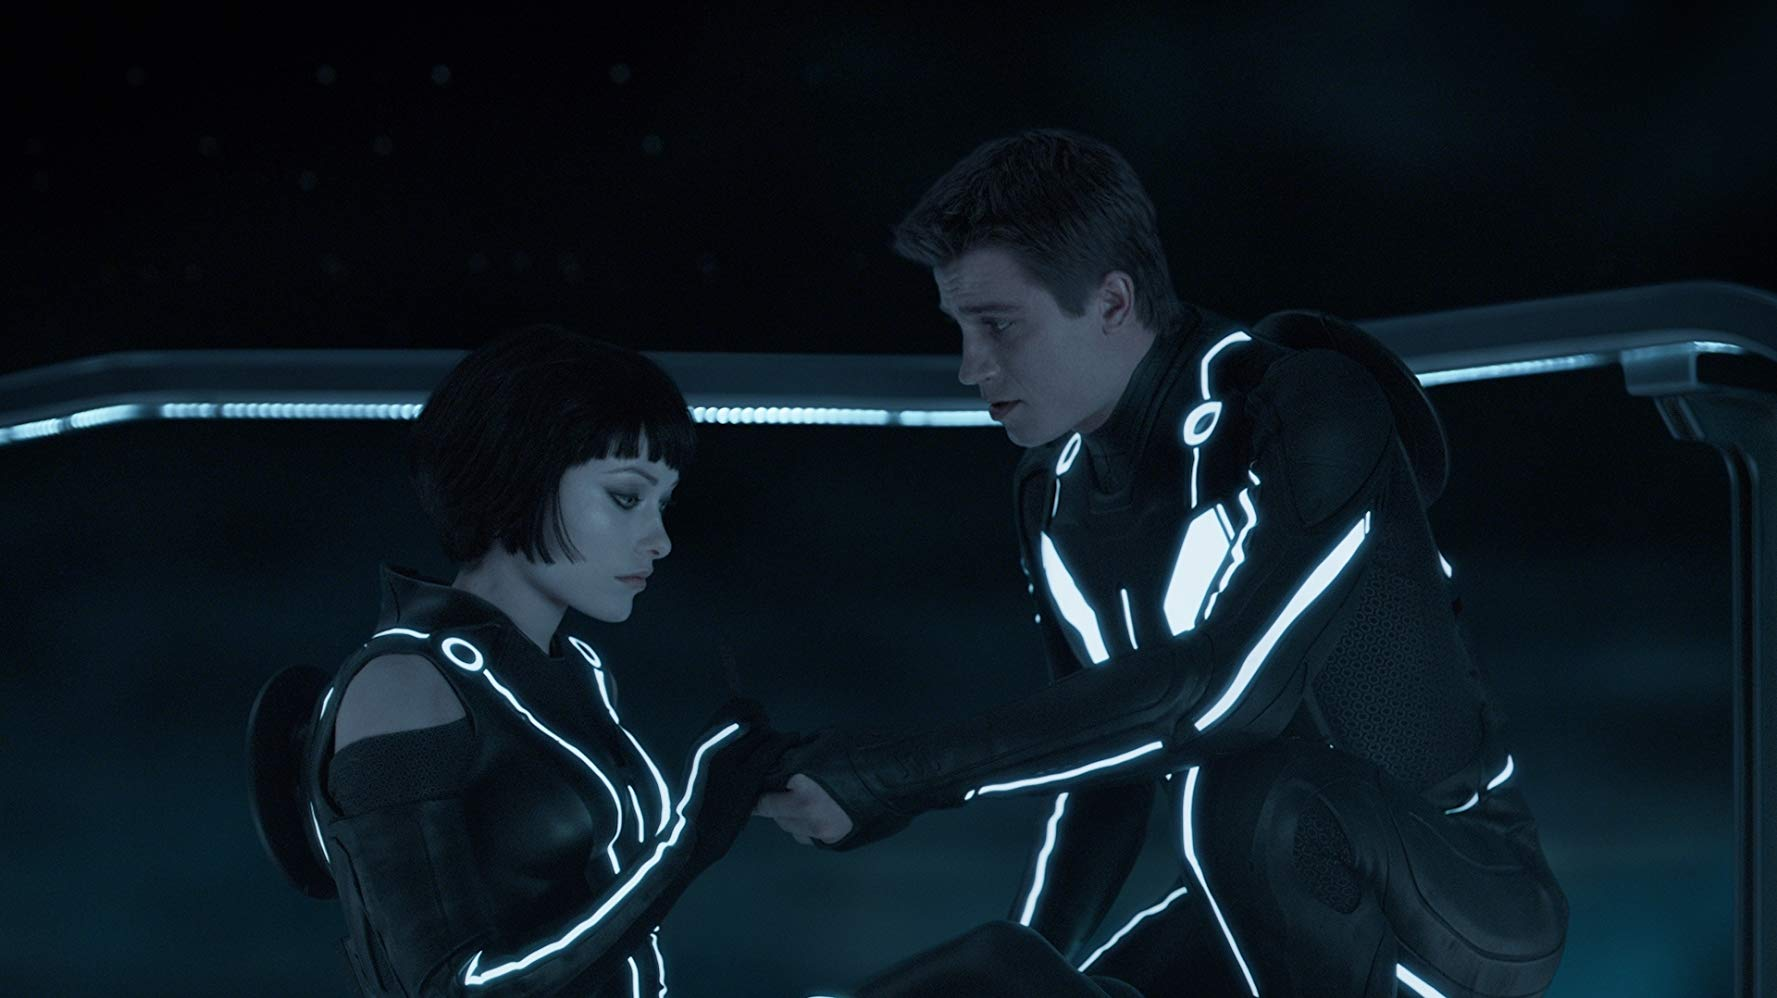 Quora (Olivia Wilde) and Garrett Hedlund as Flynn's son in Tron Legacy (2010)